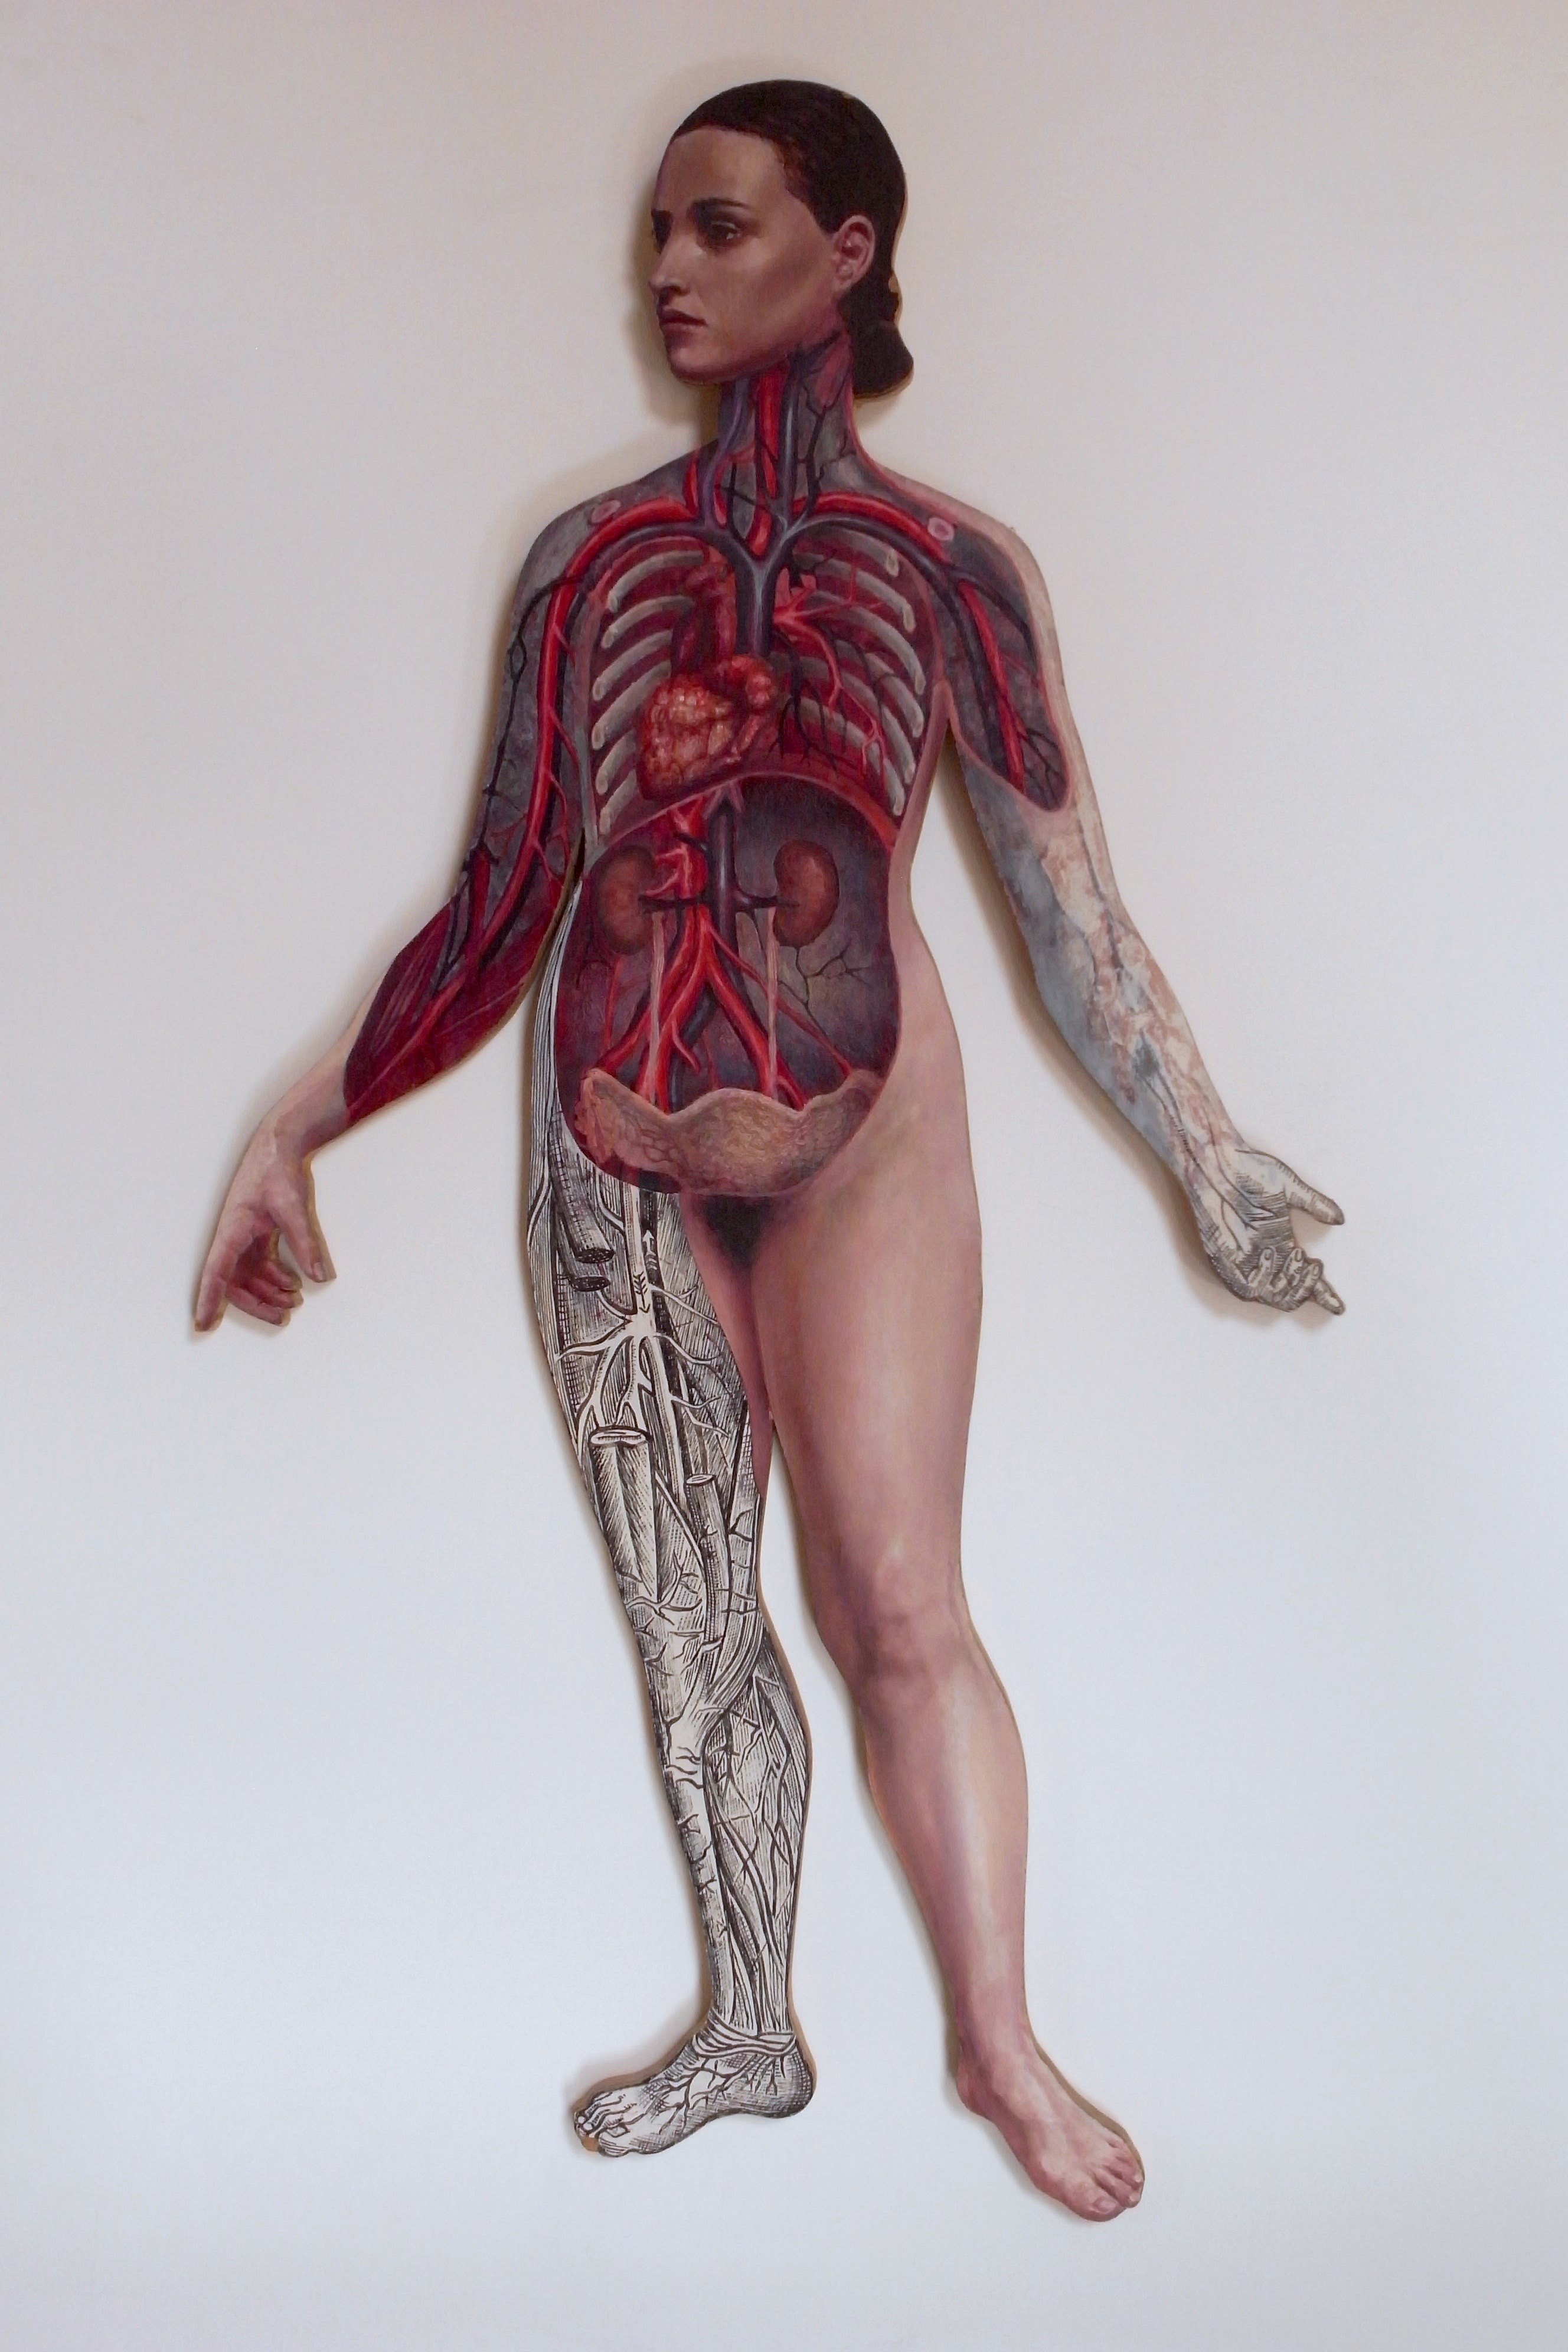 female anatomical painting based on Victorian medical engraving